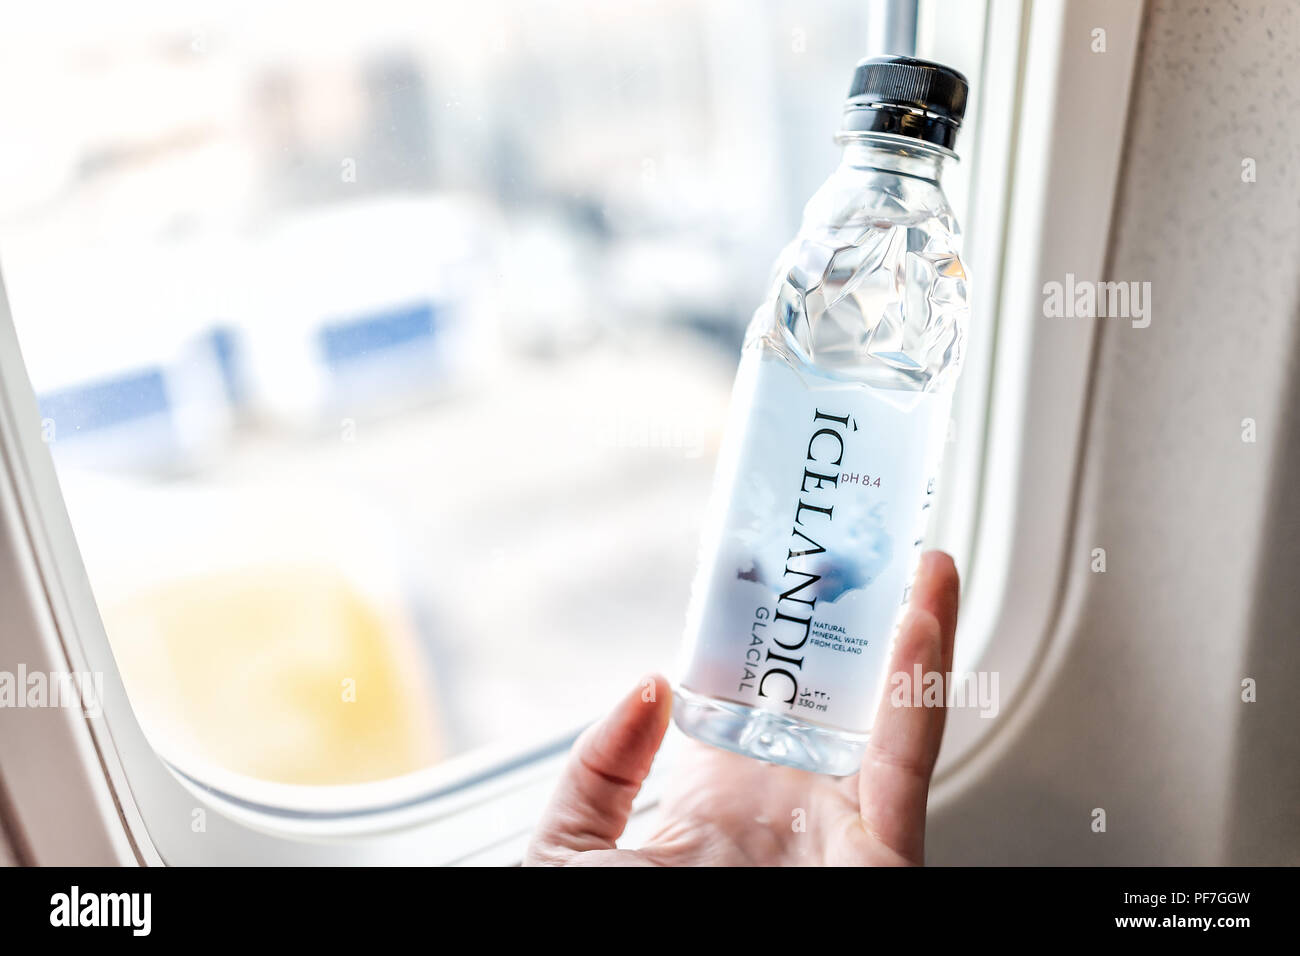 Dulles, USA - June 13, 2018: Young woman's hand holding Icelandic Glacial mineral water bottle in Icelandair airplane by window with view of airport i - Stock Image